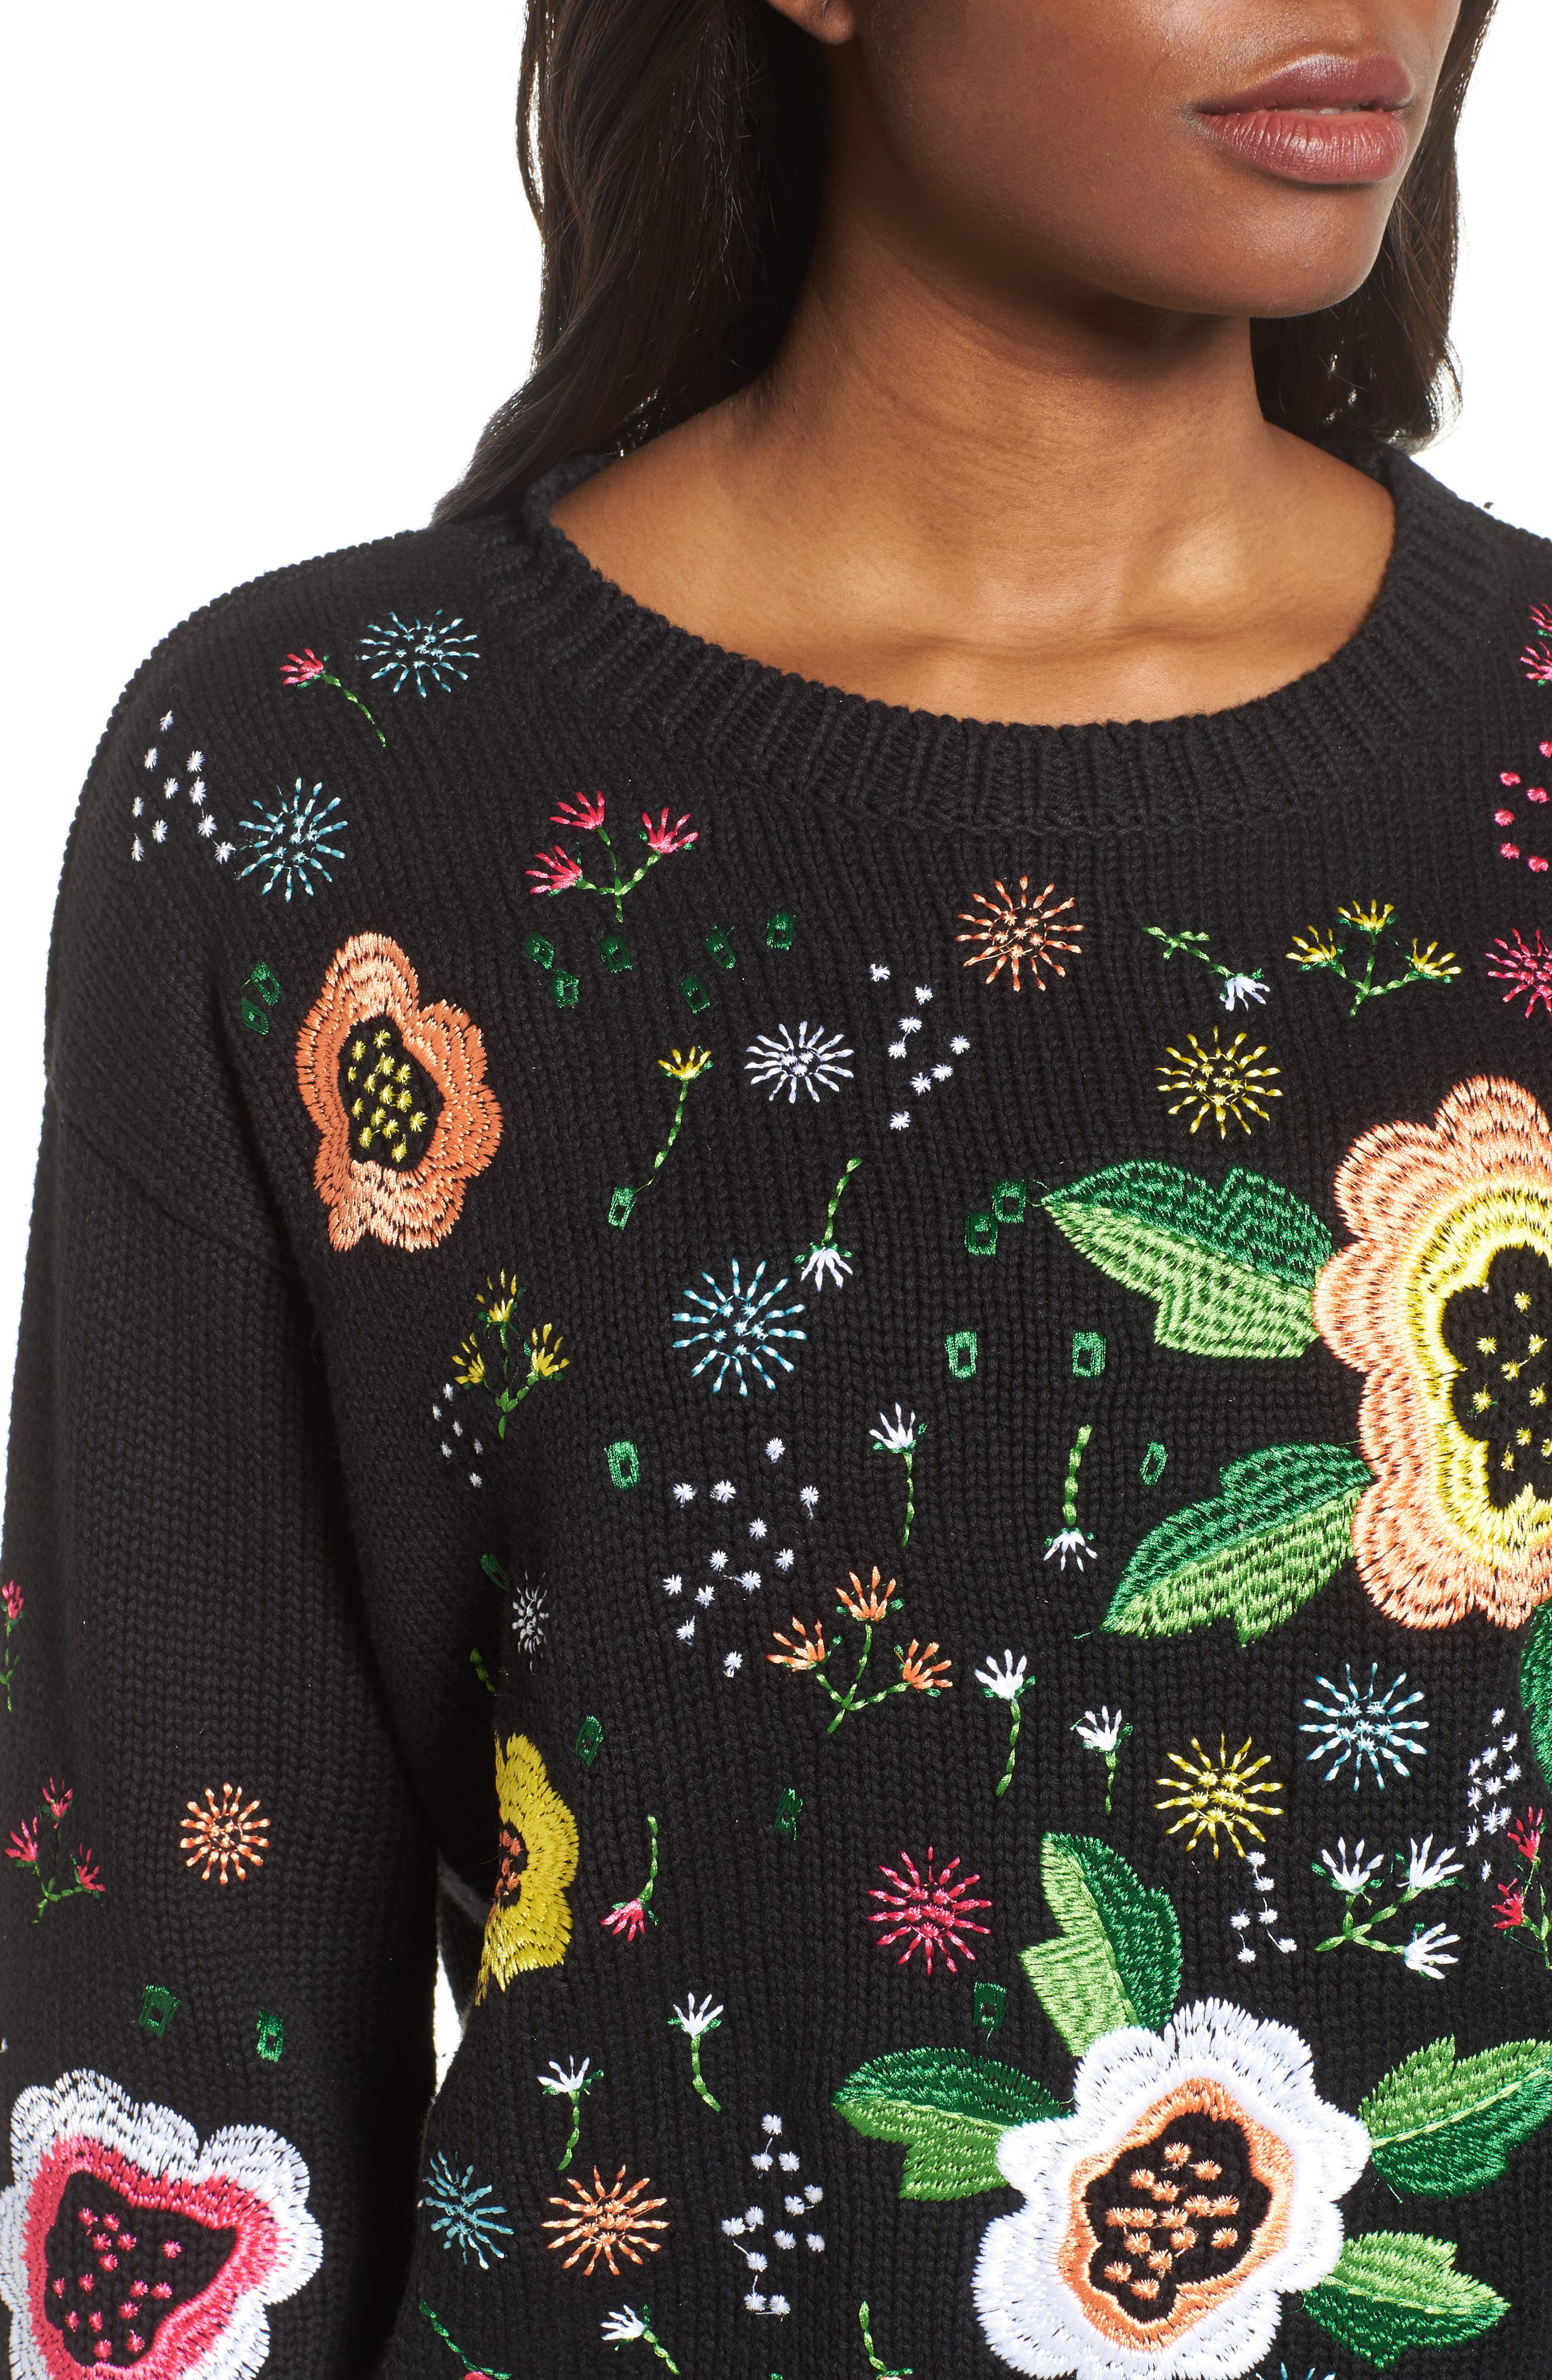 Floral Embroidered Sweater,                             Alternate thumbnail 4, color,                             001